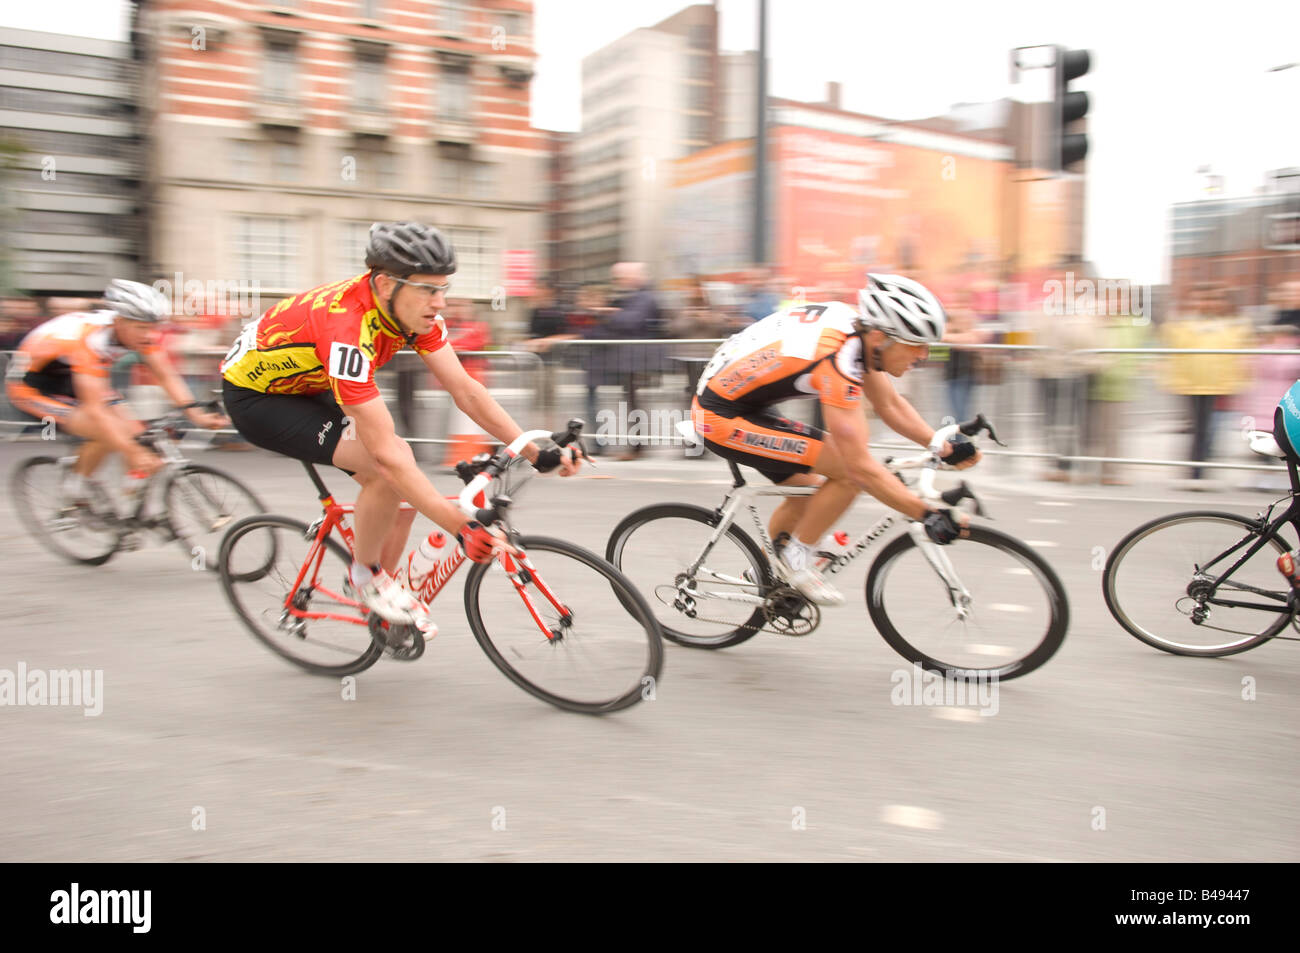 Cyclists in the Tour of Britian Cycle Race 2008 speed down the road in Liverpool - Stock Image